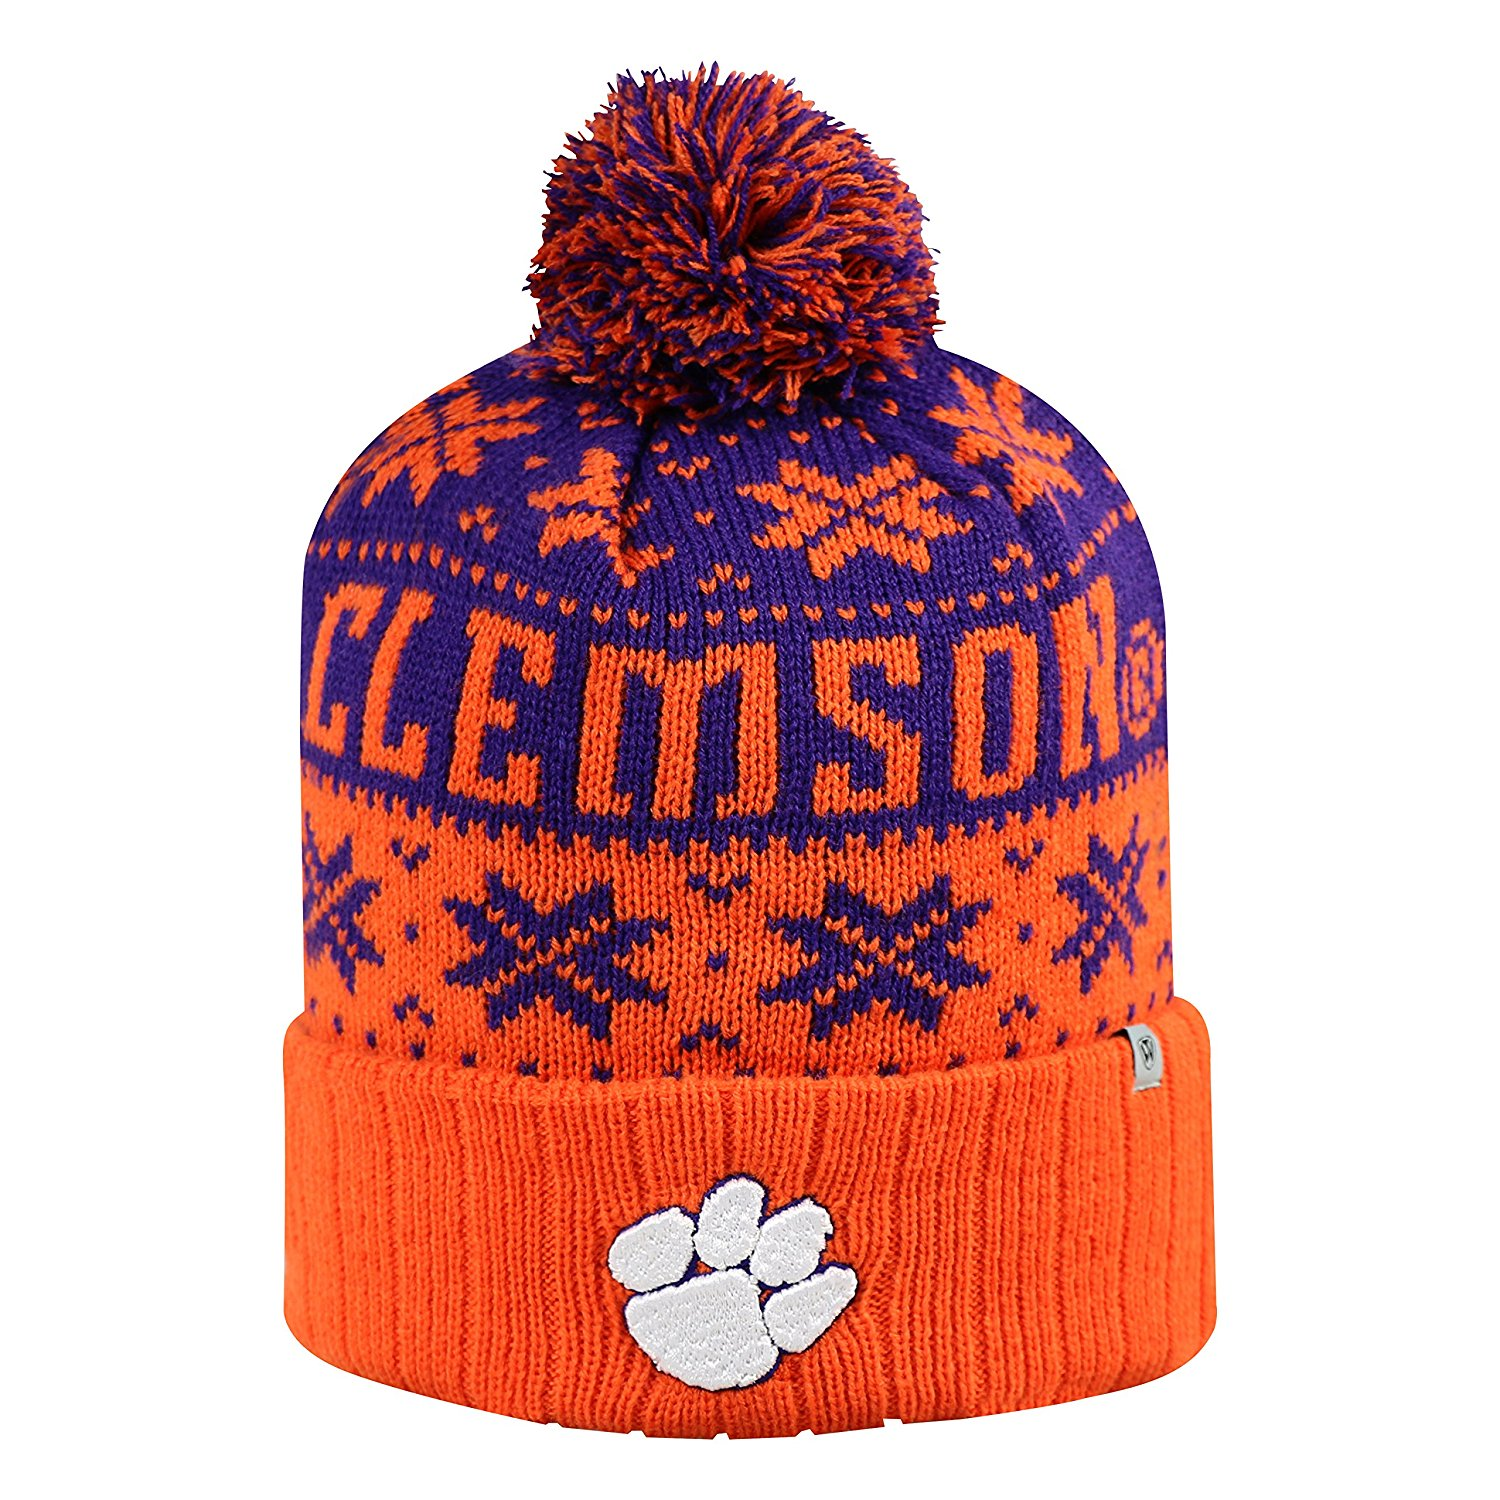 ac71bc6b330 Clemson Tigers Official NCAA Subartic Beanie Cuffed Stocking Stretch Knit  Sock Hat Cap by Top of